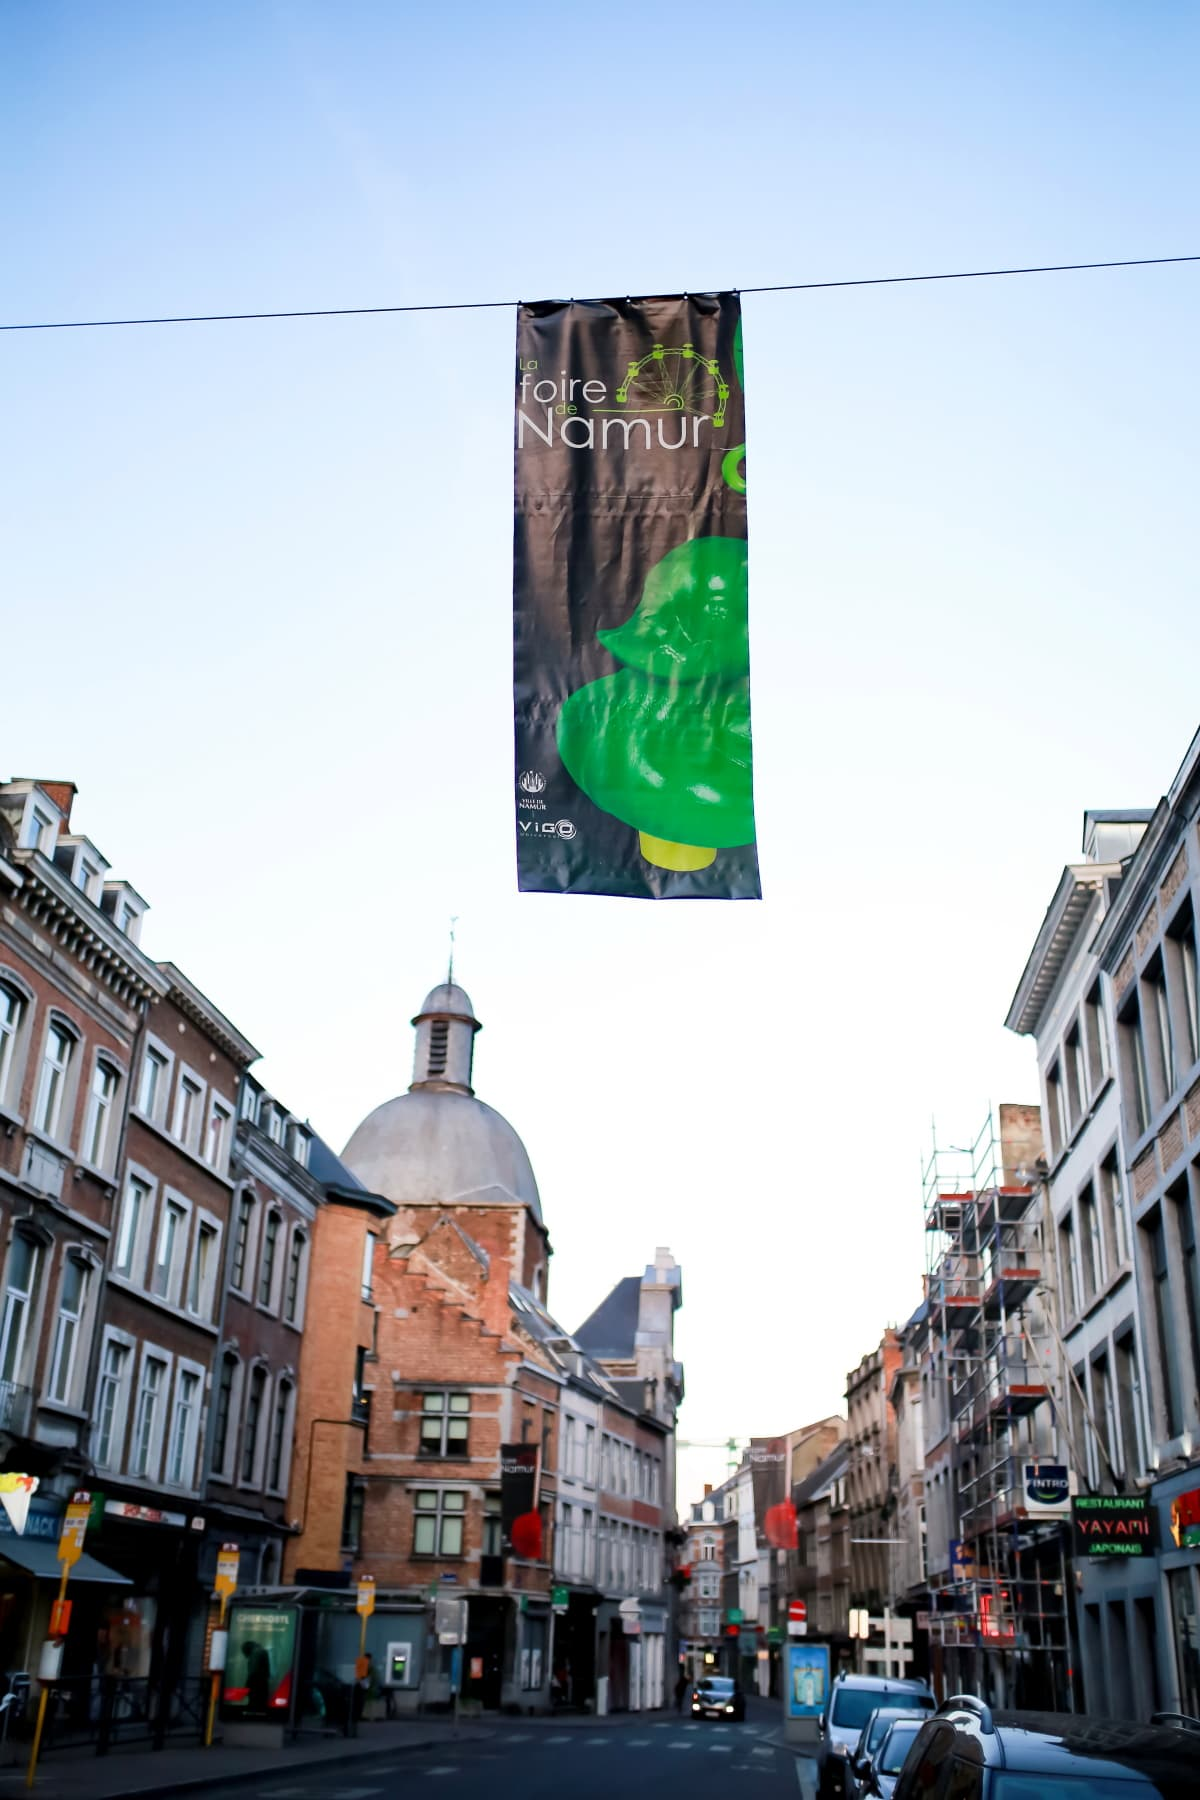 Avoid the tourist trap and visit Namur! There are daily train rides from the airport straight to the city of Namur. These are the best things to do and see in Namur, Wallonia!